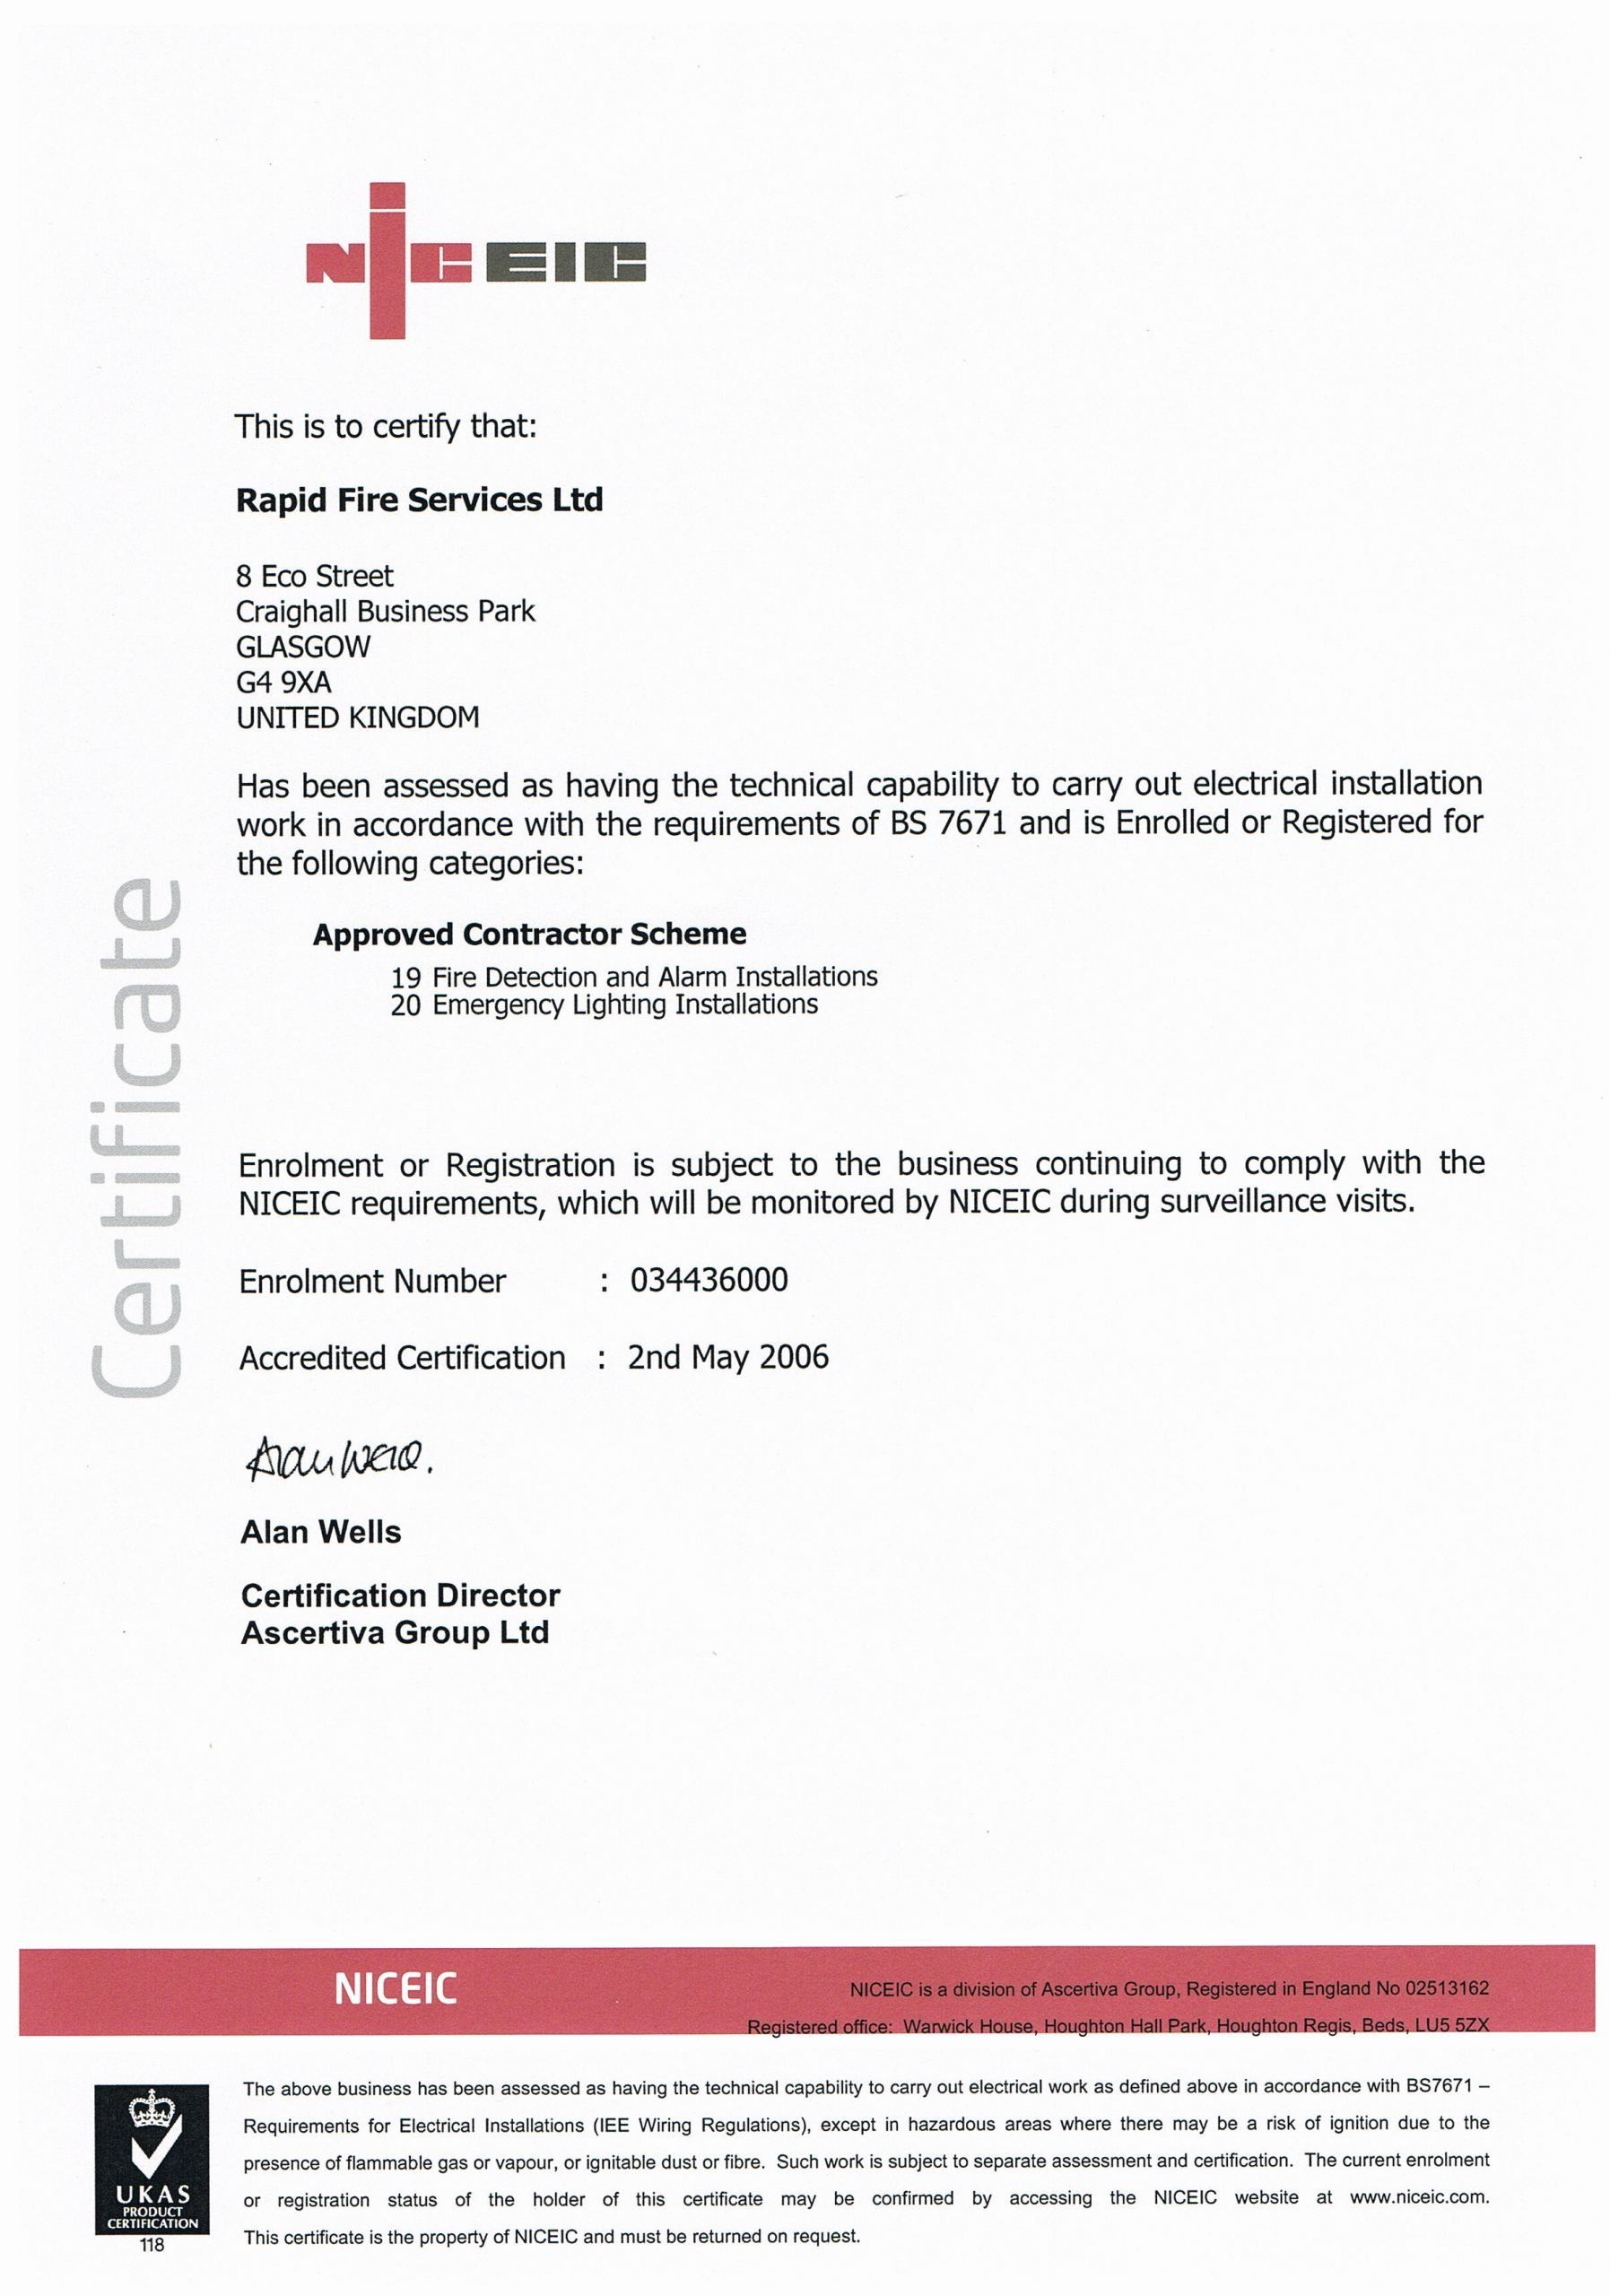 Alarm Certificate For Insurance Template Luxury Insurance Policy Verification Letter In 2019 Dannybarrantes Service Maintenance Statement Template Templates Alarm certificate for insurance template